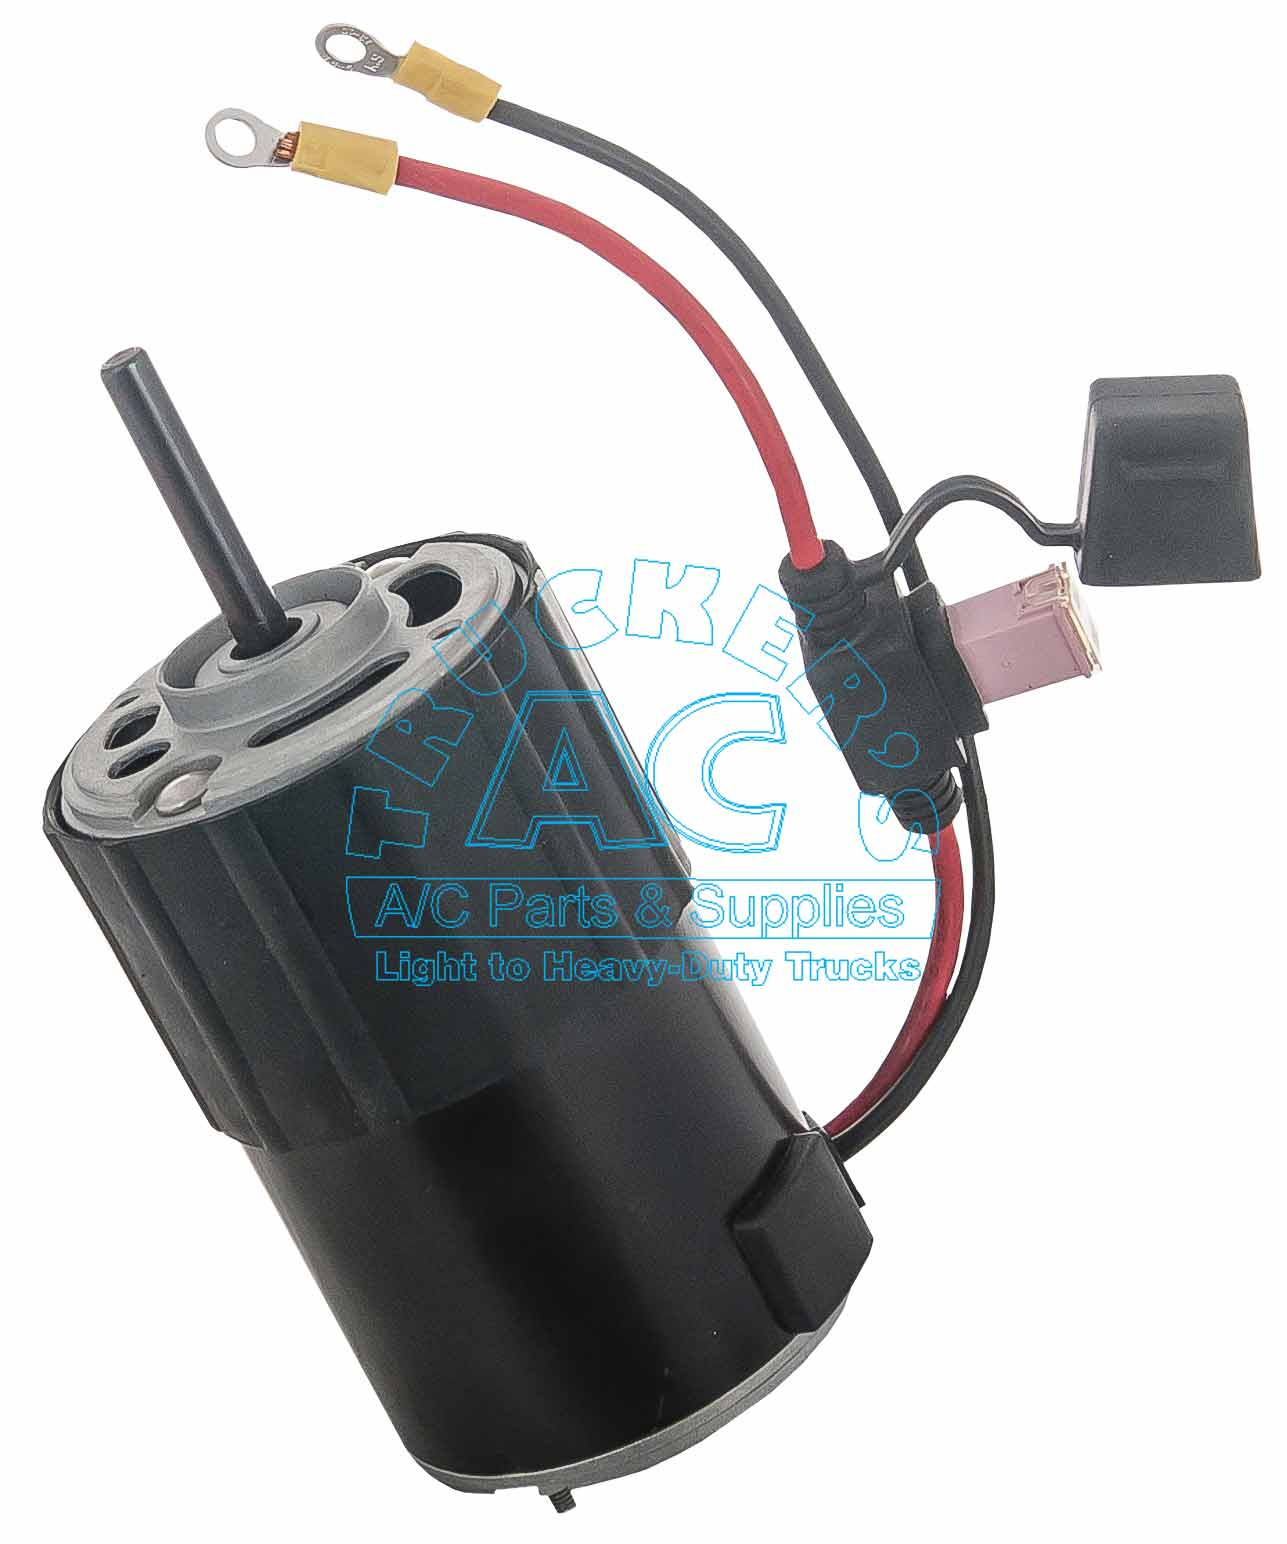 Blower motor carrier trans air oem 54 00653 01 for Motor carrier number lookup